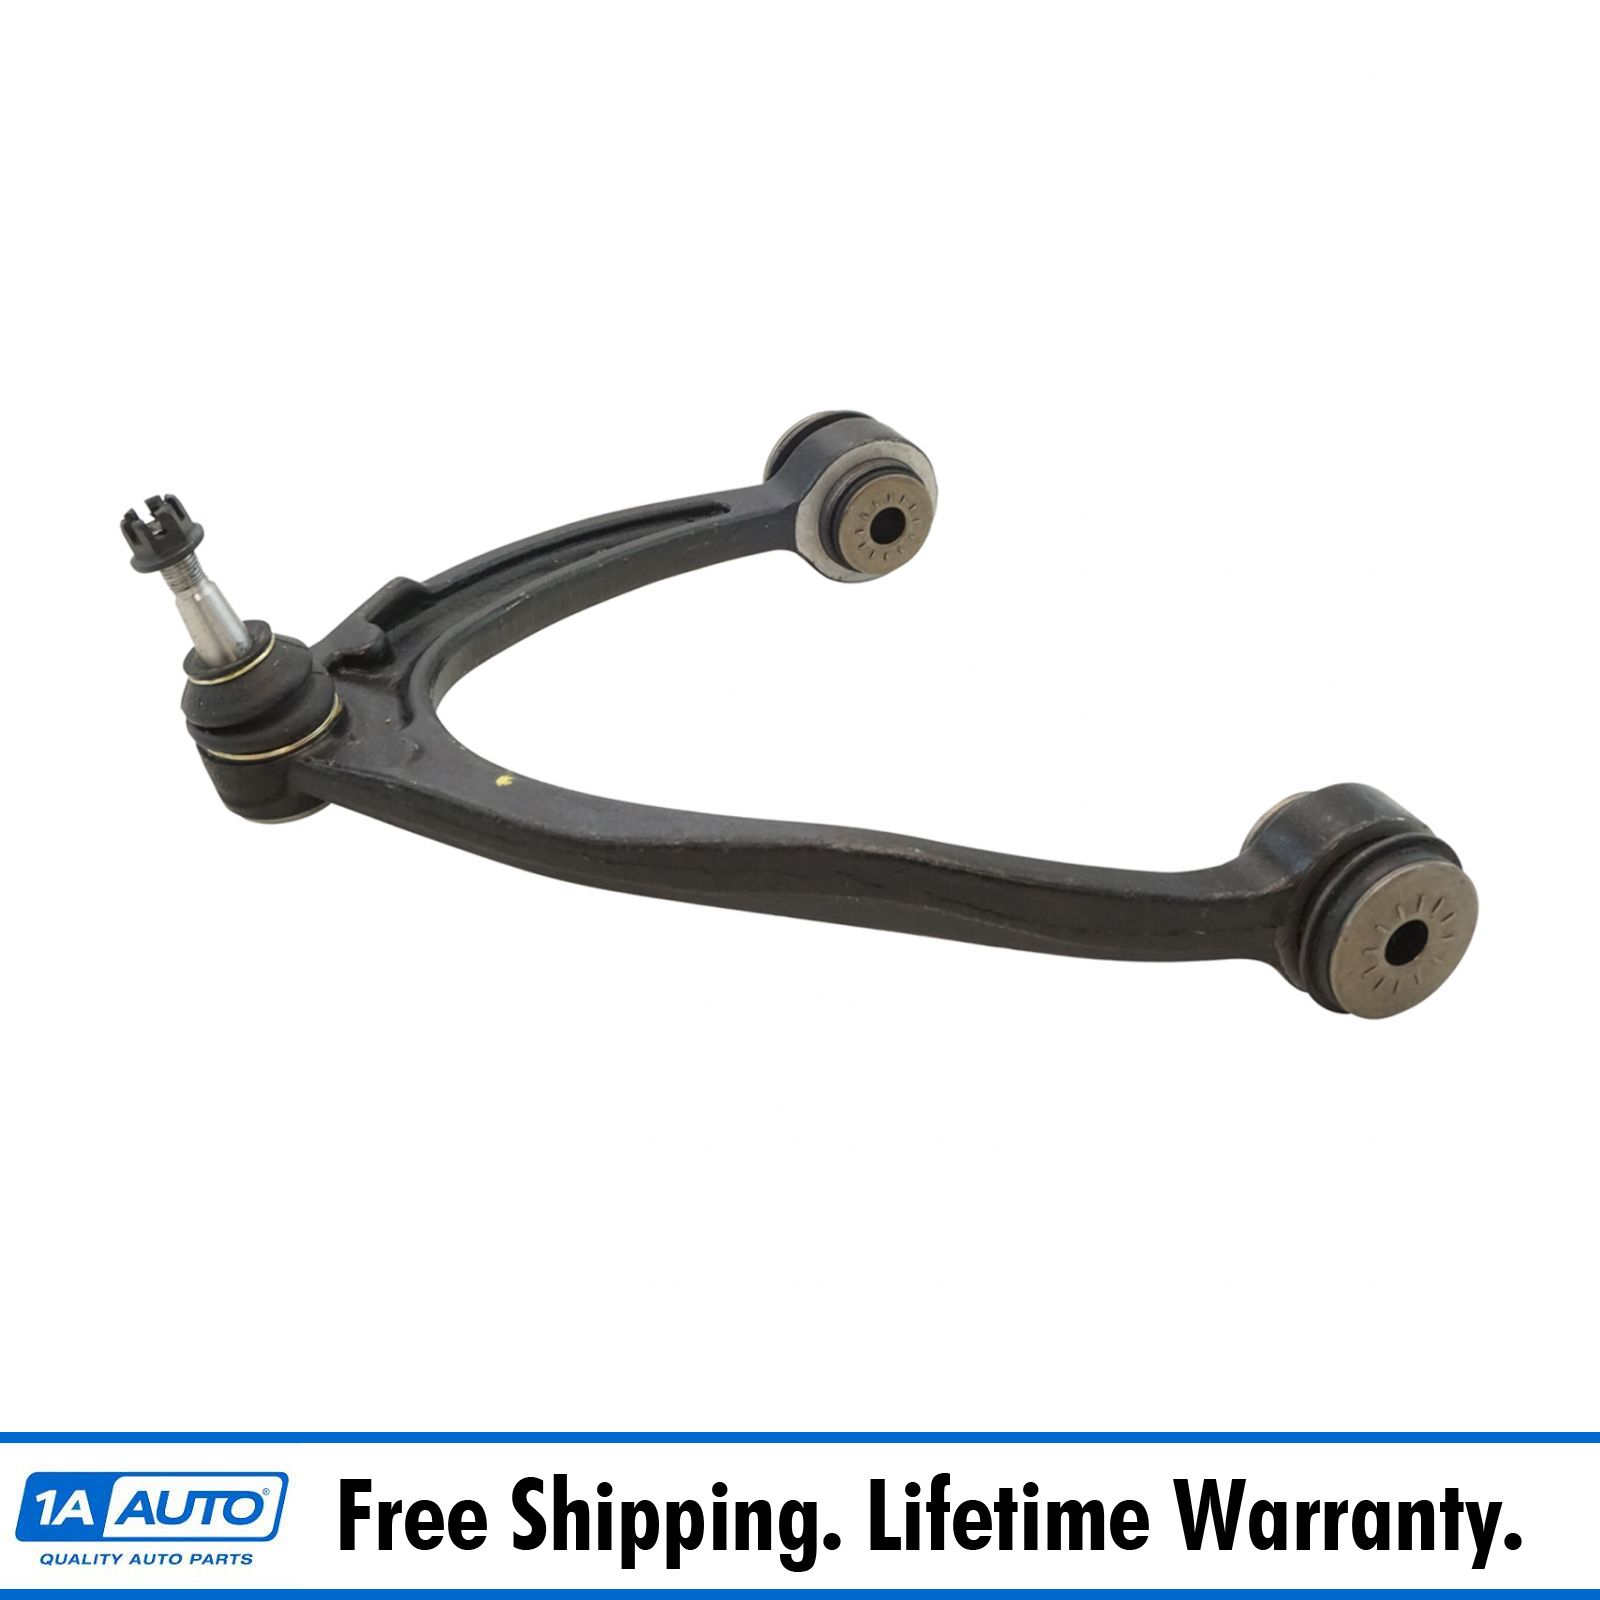 New Front Upper Control Arm With Ball Joint Pair Set For Chevy Gmc Suv Truck